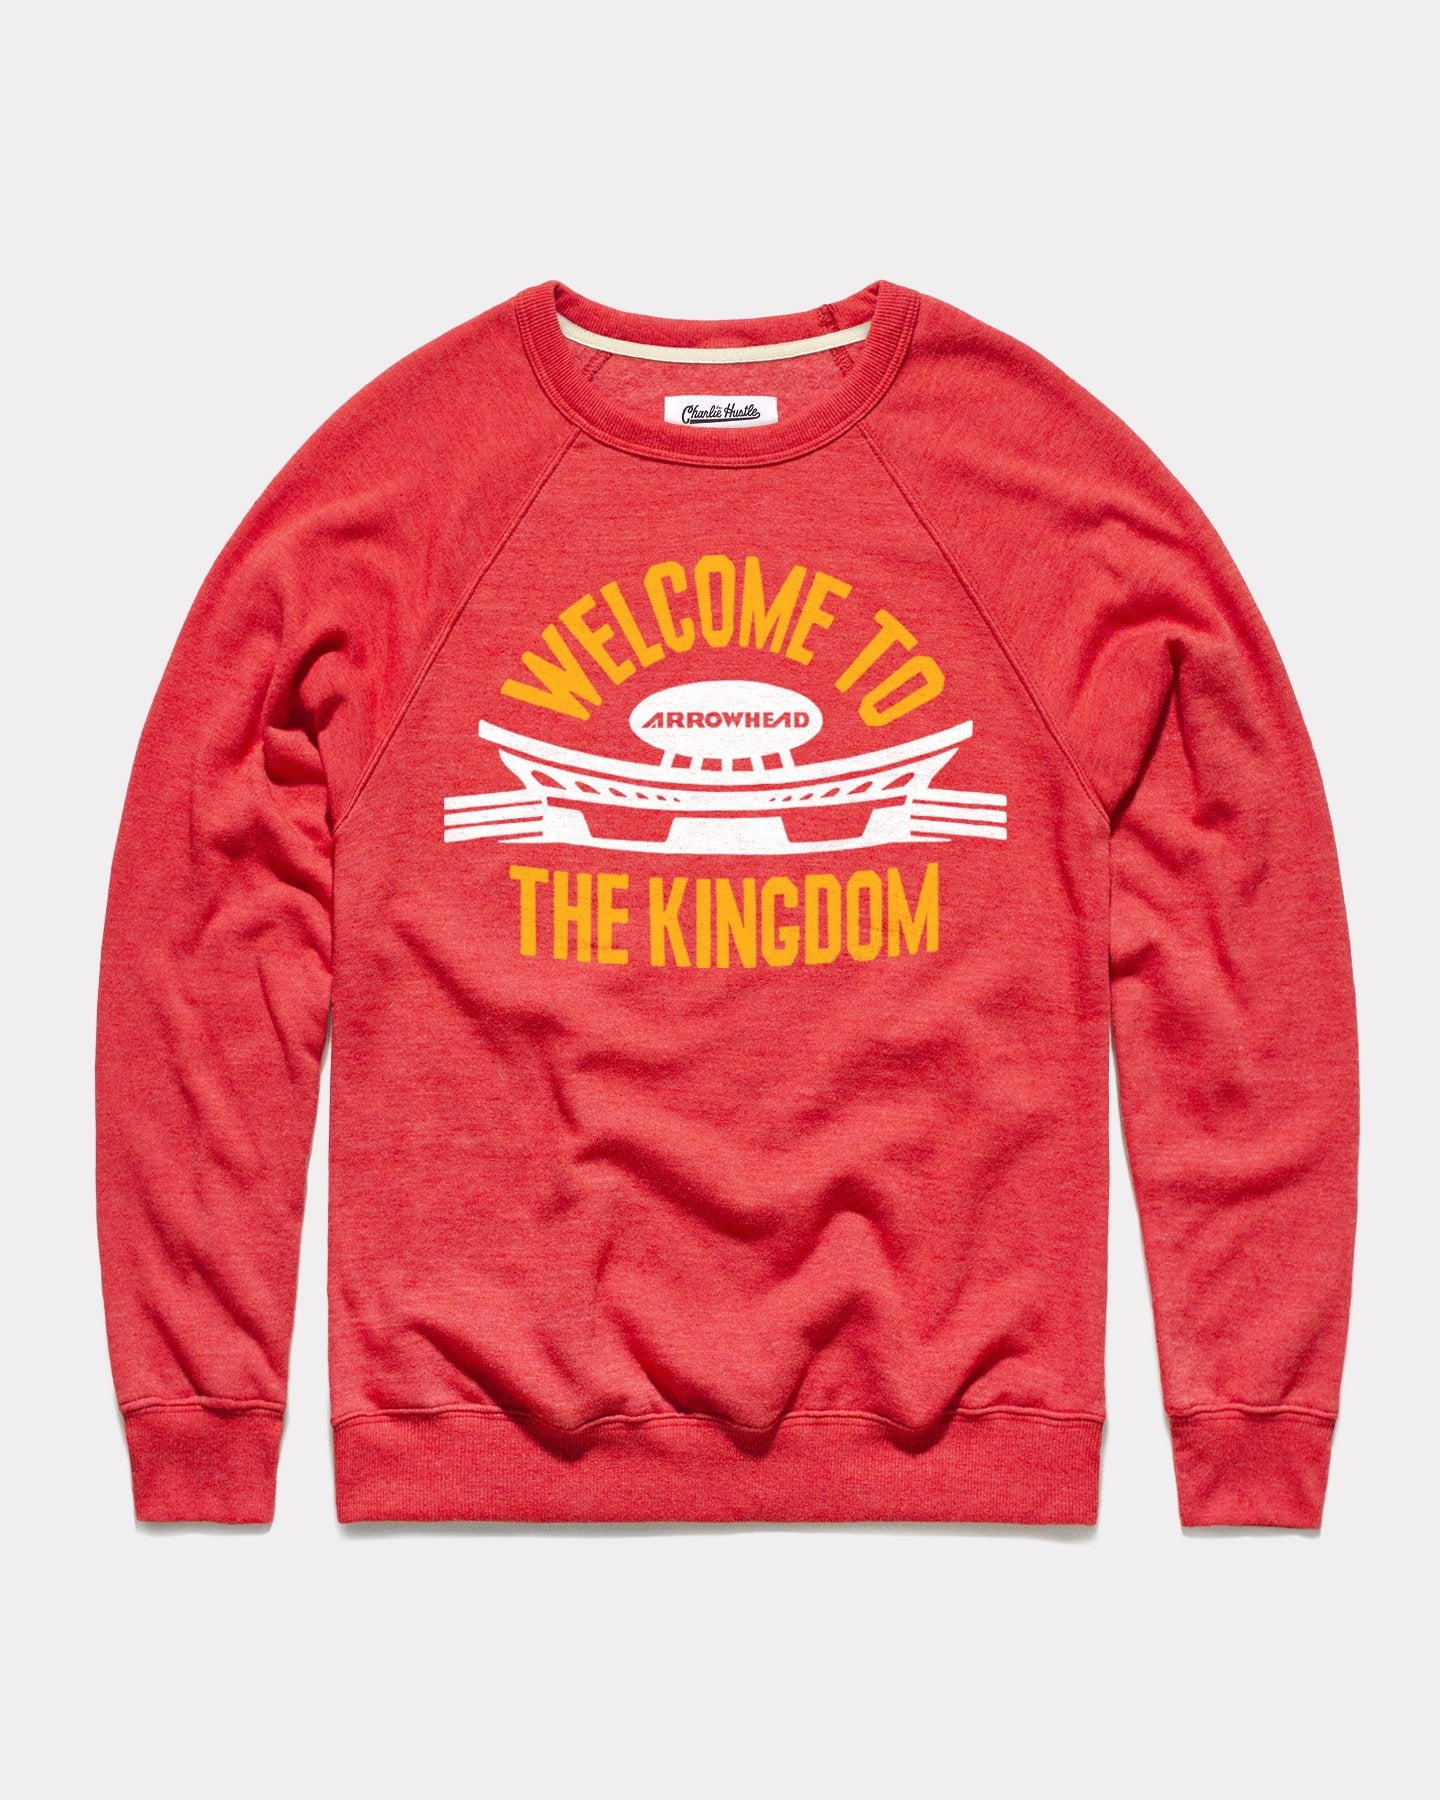 Red Welcome To The Kingdom Vintage Arrowhead Crewneck Sweatshirt